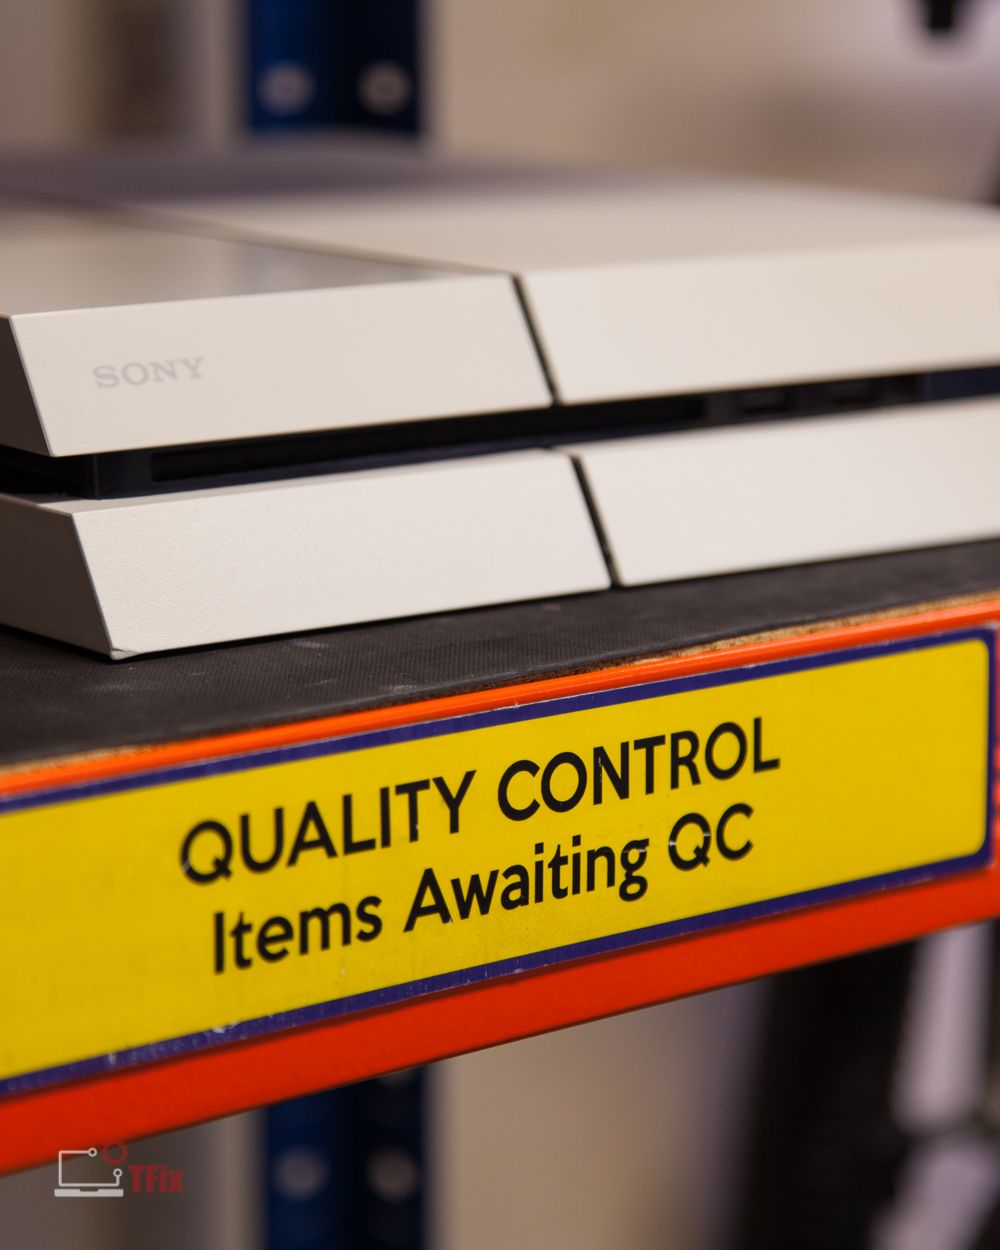 Playstation 4 in quality control #quality #control #playstation4